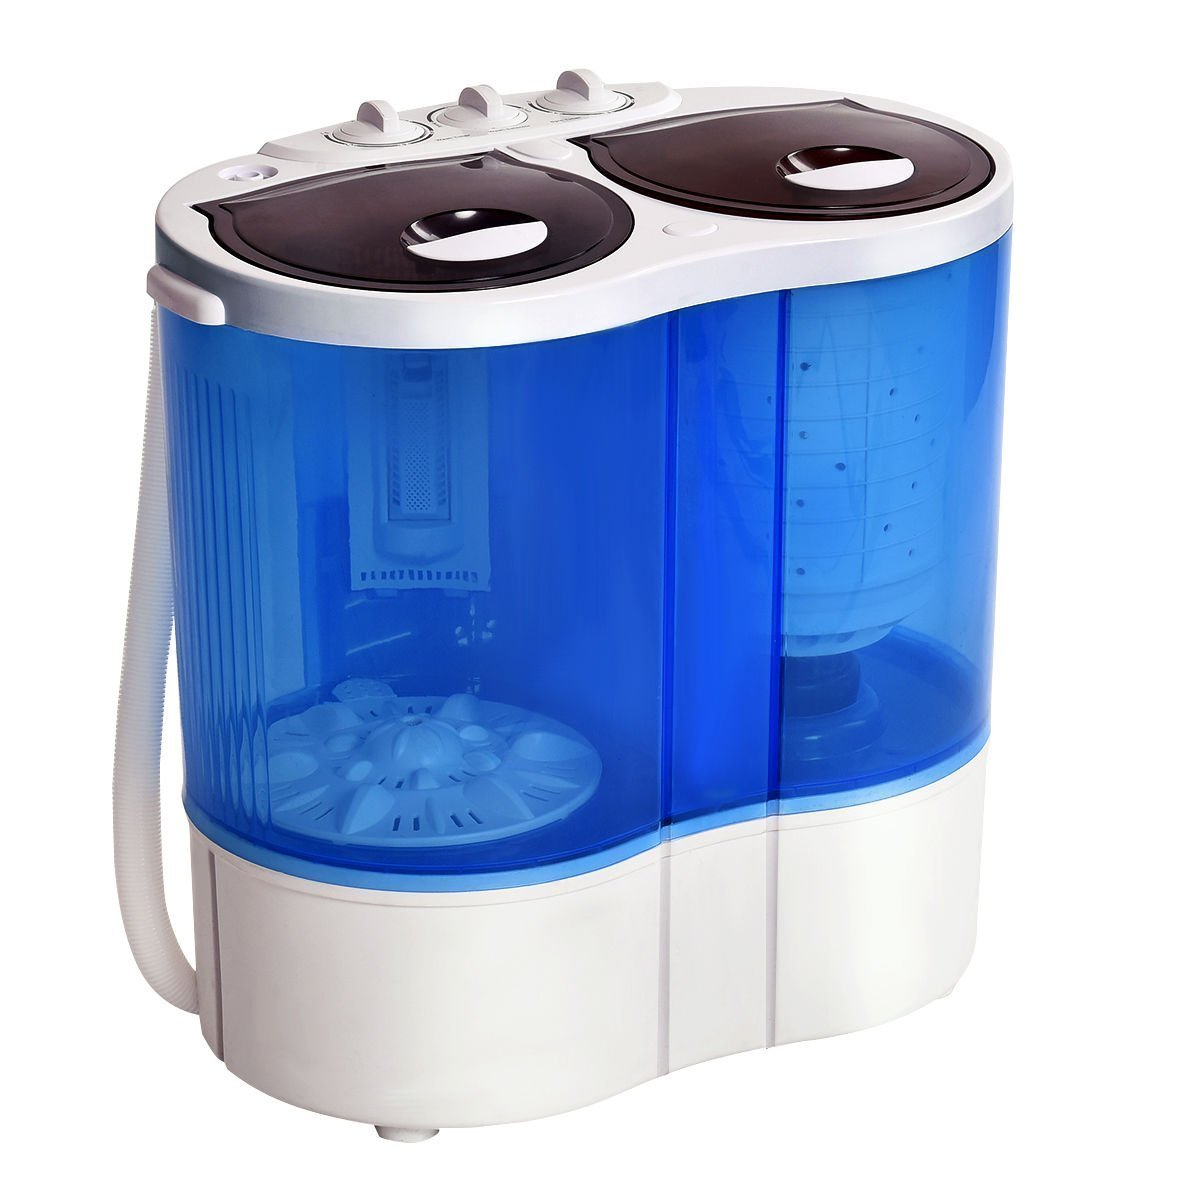 Giantex Portable Mini Washing Machine Gravity Drain Compact Twin Tub 15lb Washer Spinner Furni